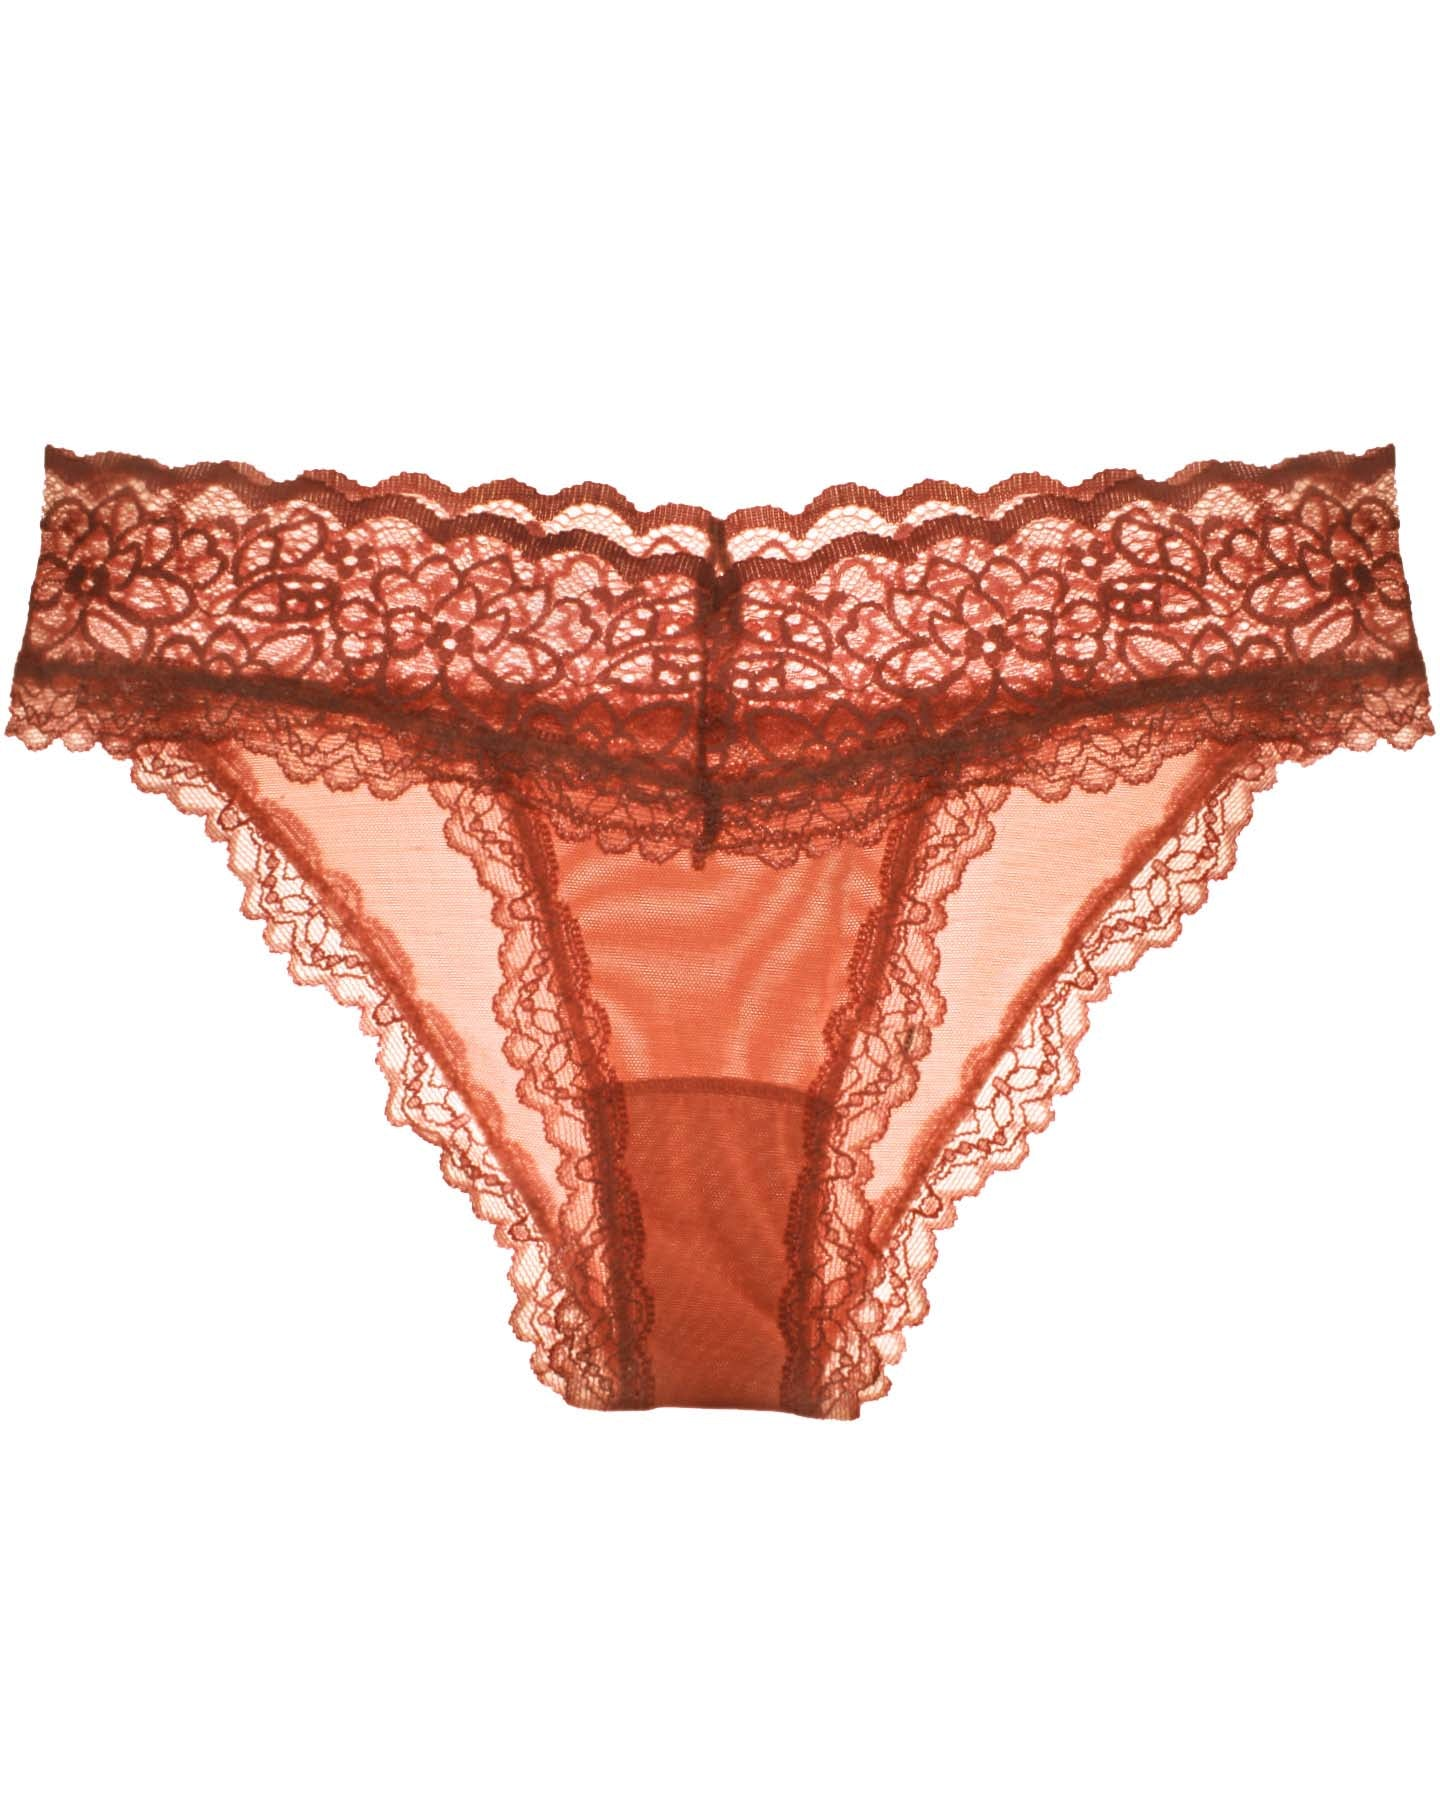 Lacey Panty in Red Clay - Uye Surana